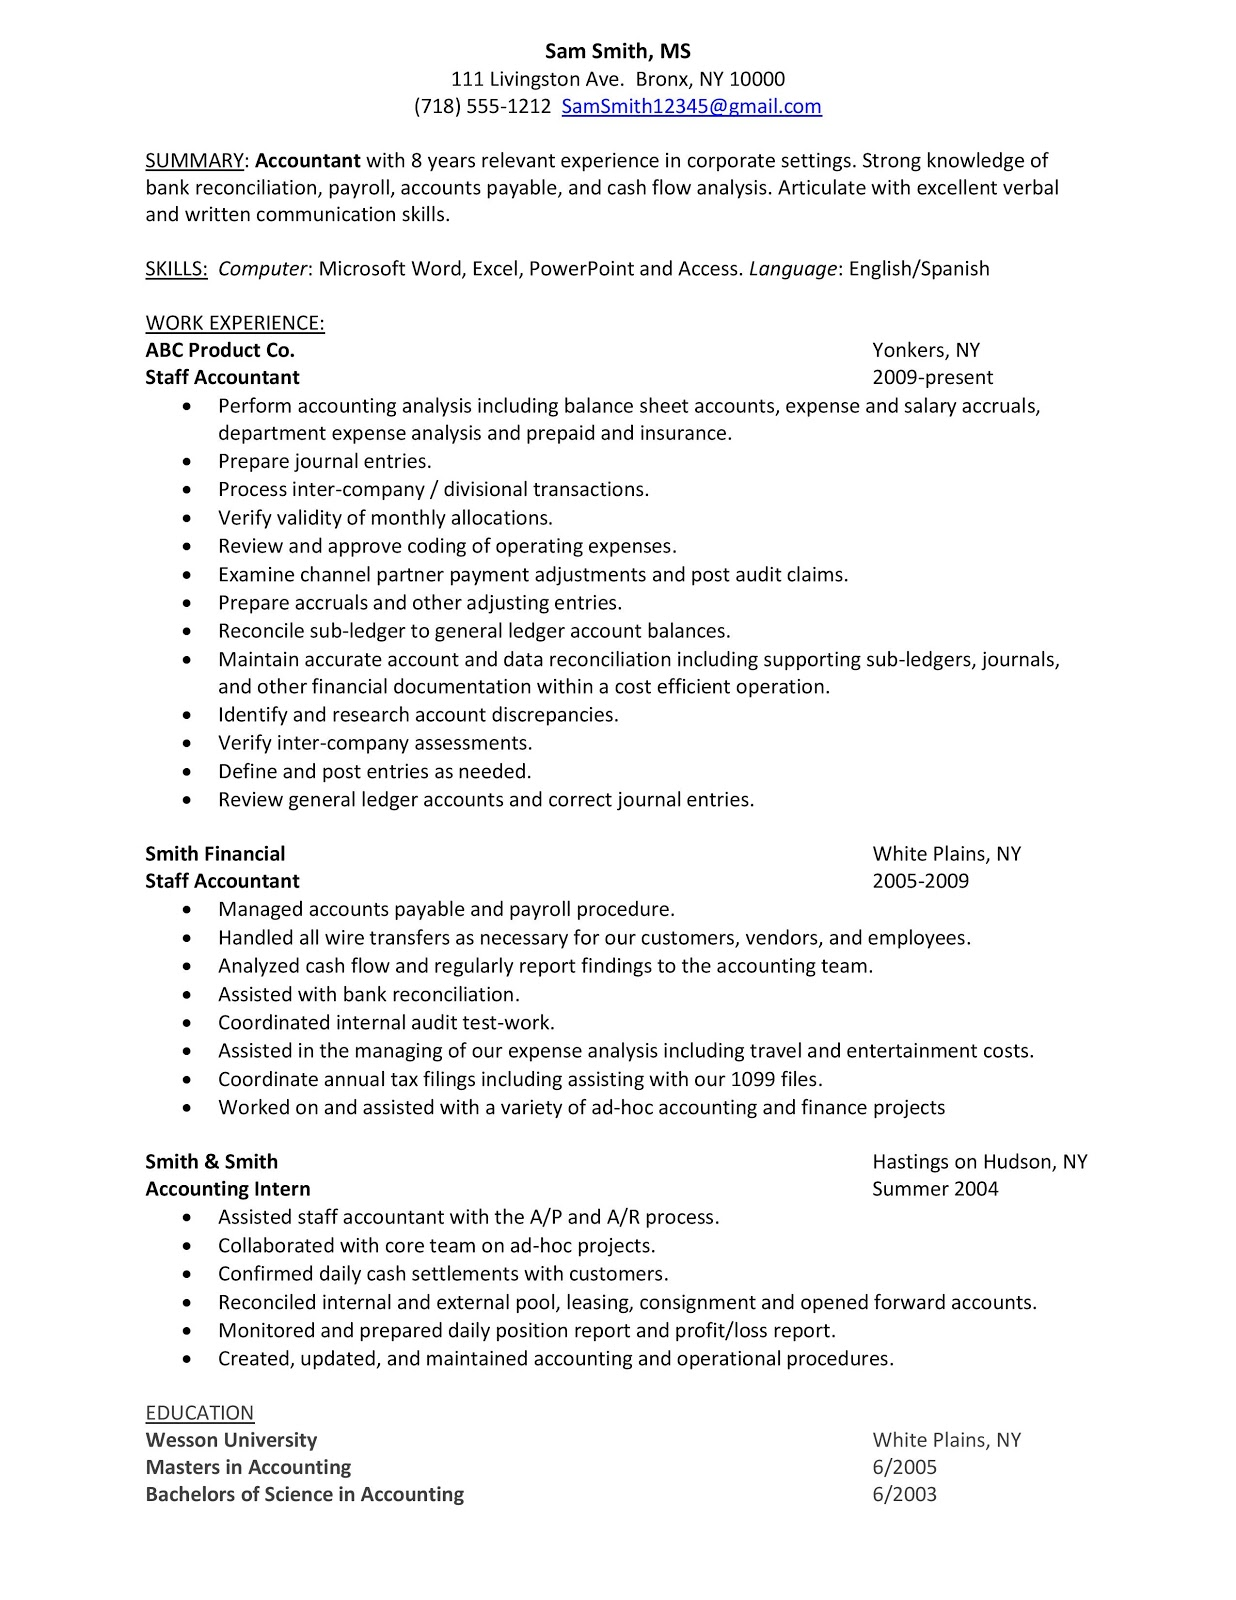 Marvelous Sample Resume: Staff Accountant Awesome Design